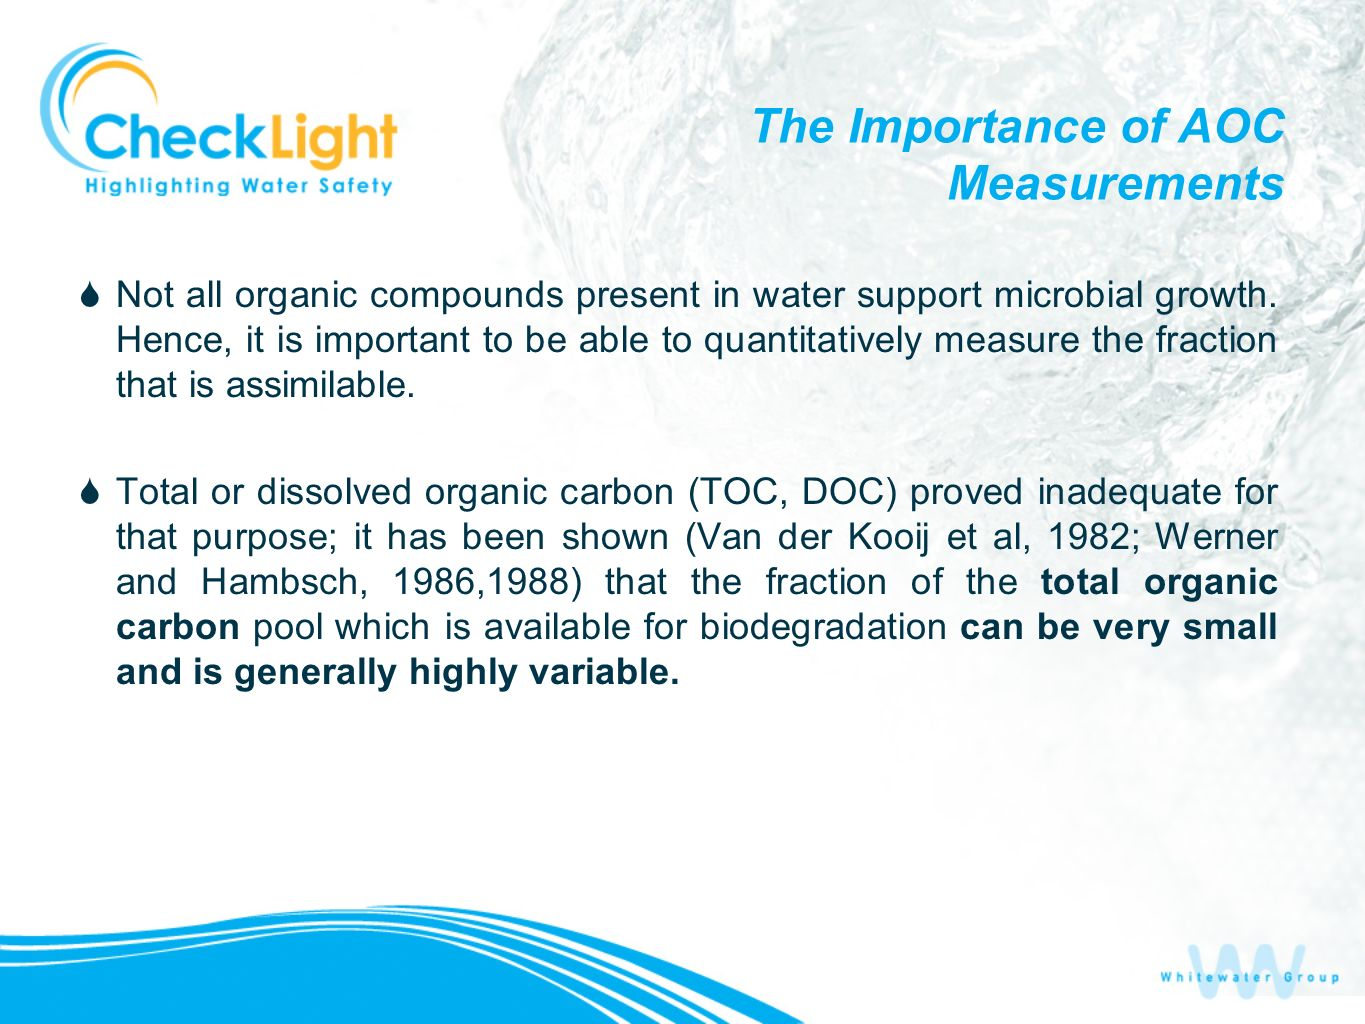 The Importance of AOC Measurements